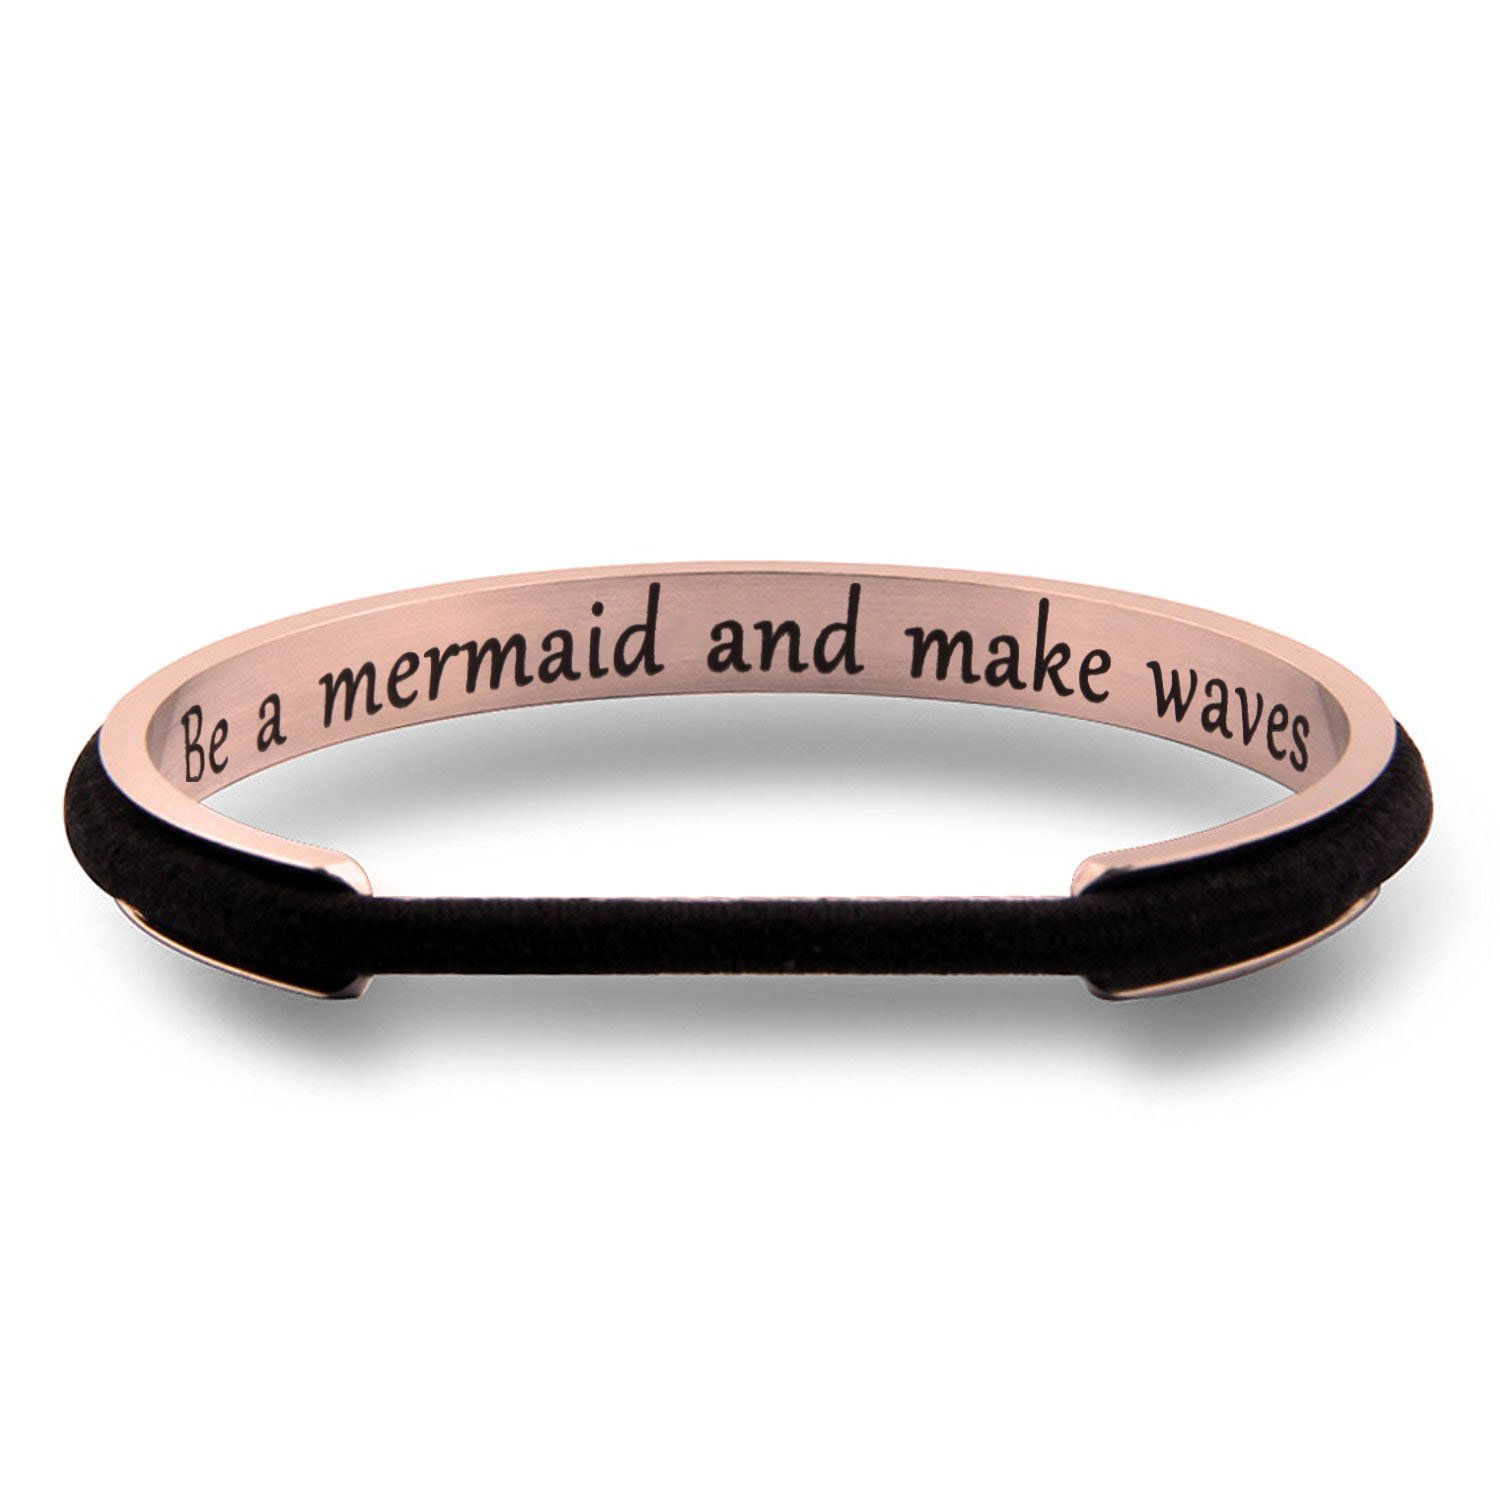 WUSUANED Be A Mermaid And Make Waves Hair Tie Grooved Cuff Bangle Bracelet Inspirational Gift For Her (be a mermaid RG)